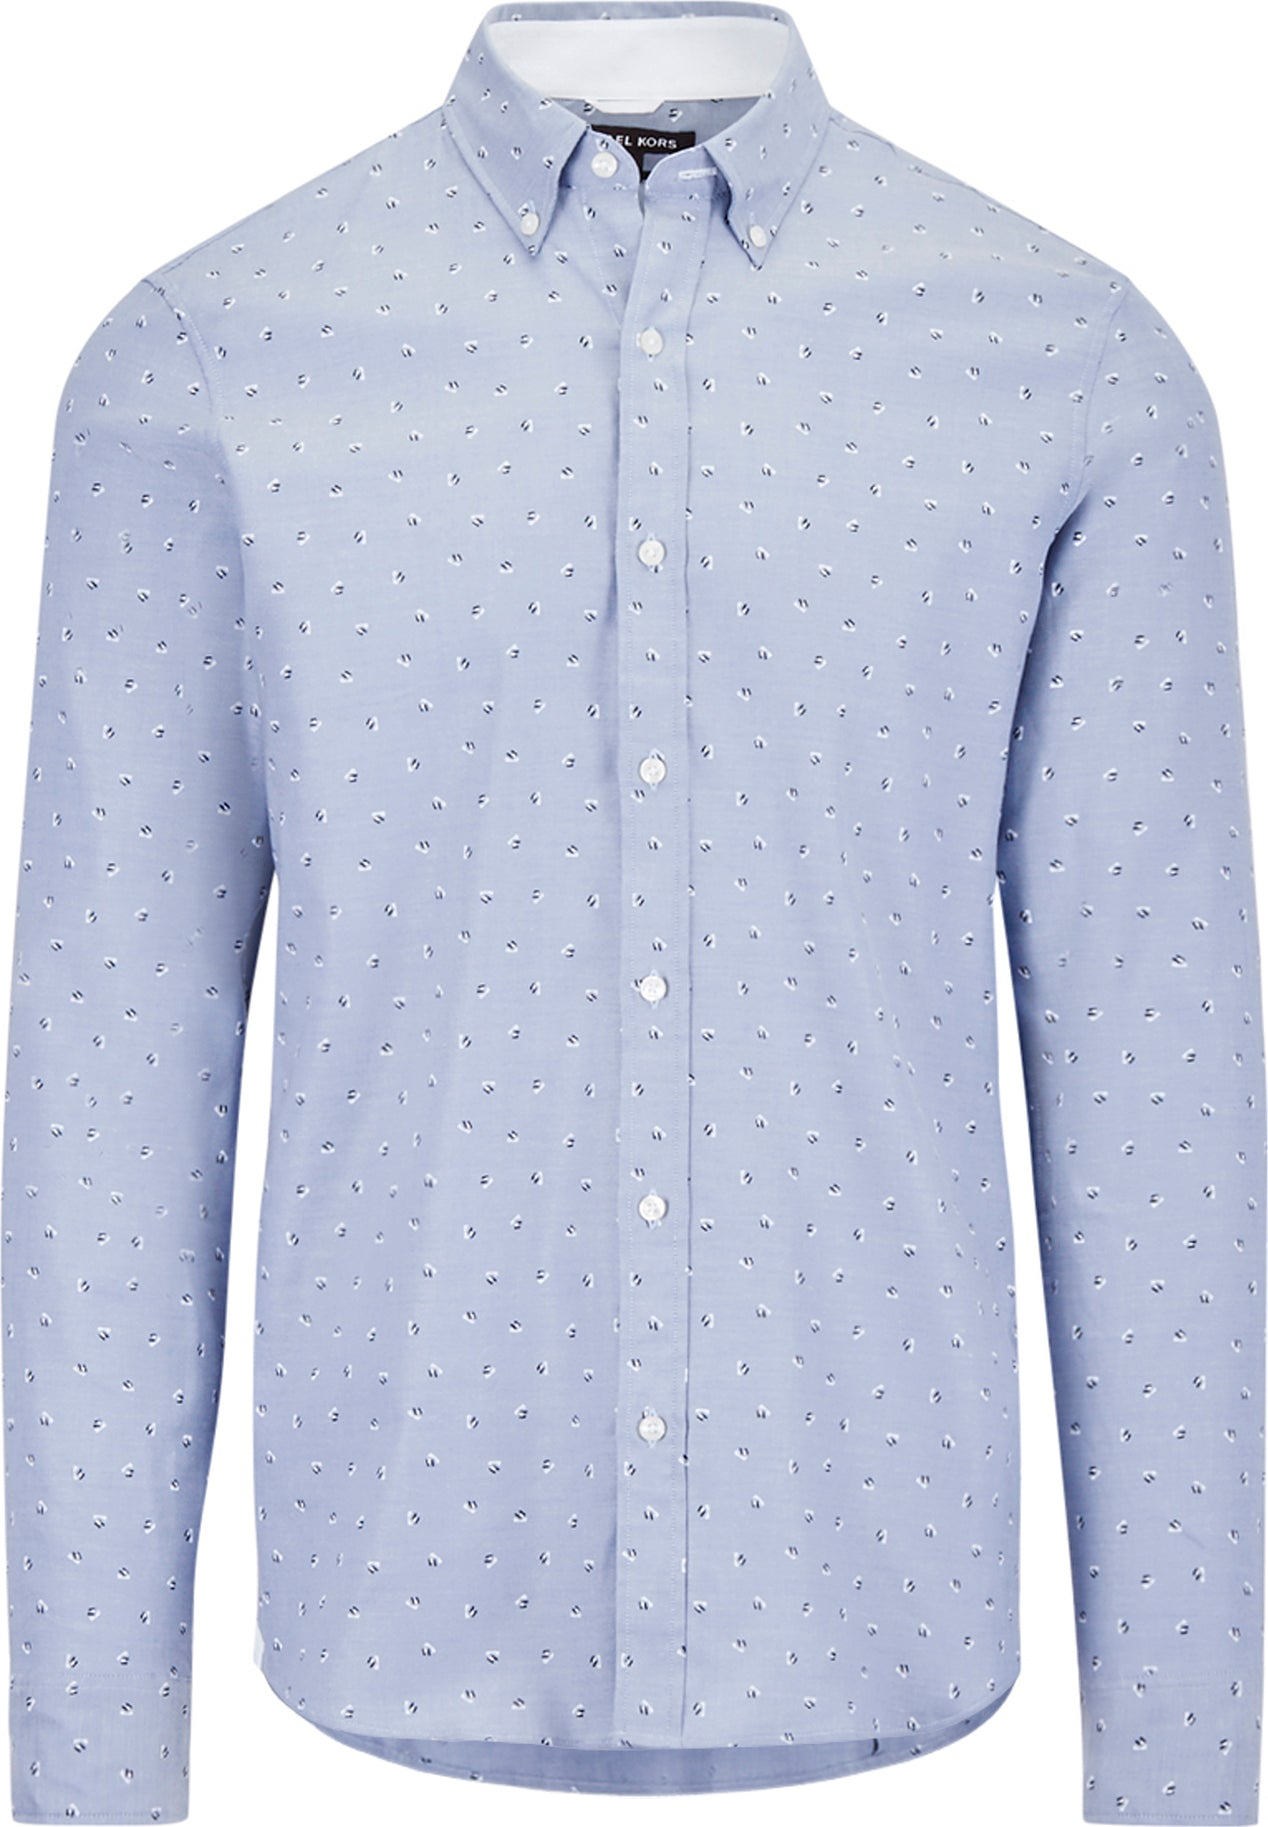 381886bb2c3006 Michael Kors Men s Trim Star Pinpoint Print